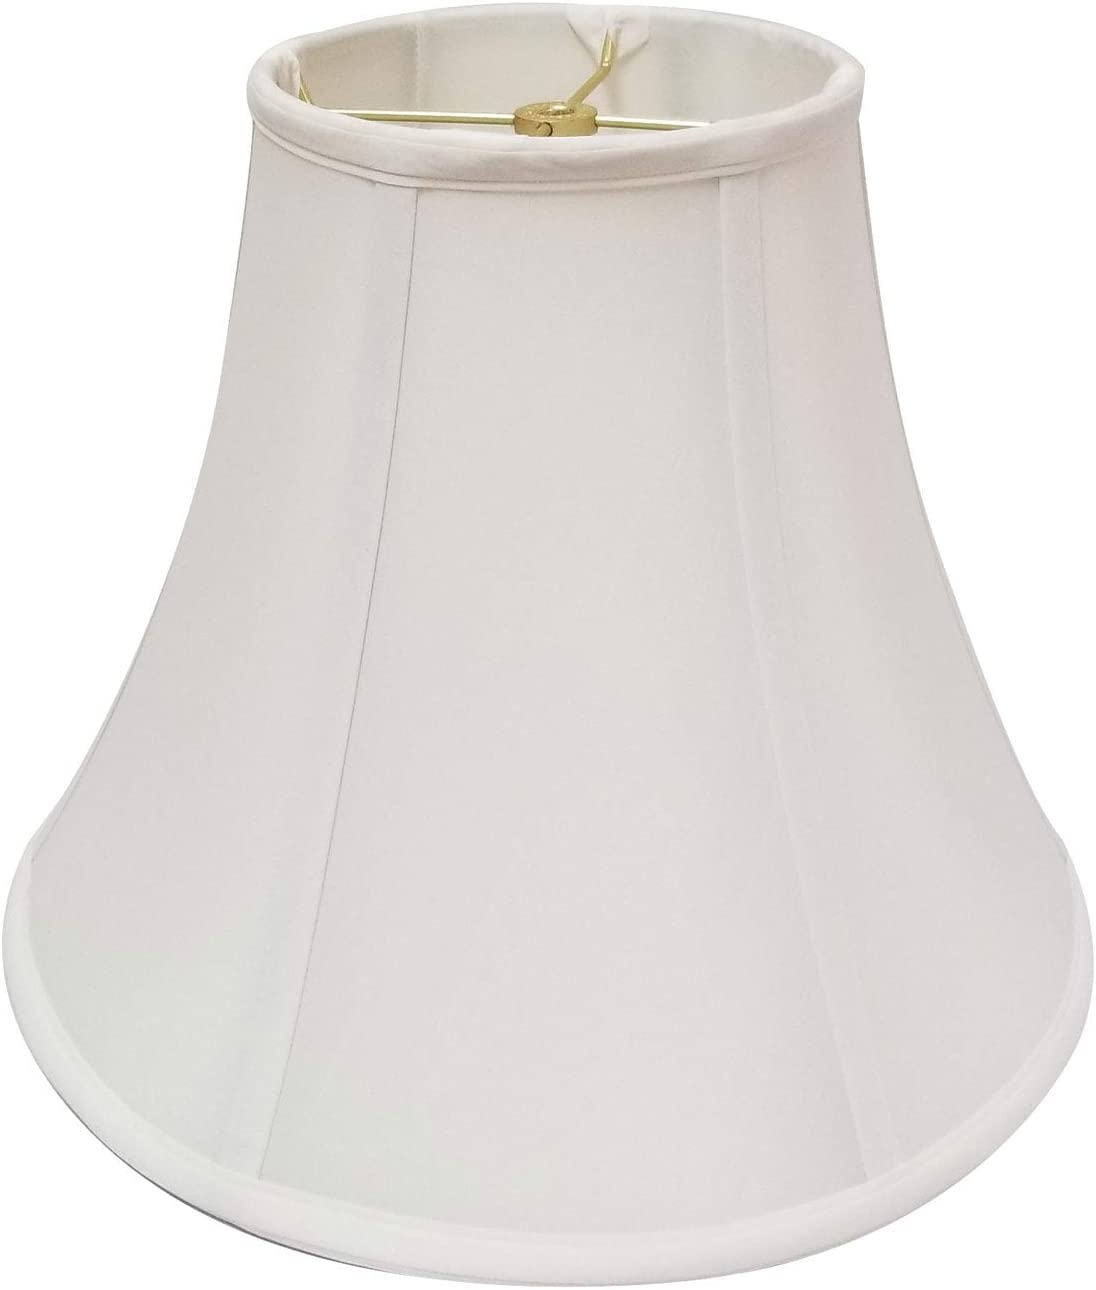 Royal Designs True Bell Basic Lamp Shade White 6 5 X 12 X 10 5 Amazon Com